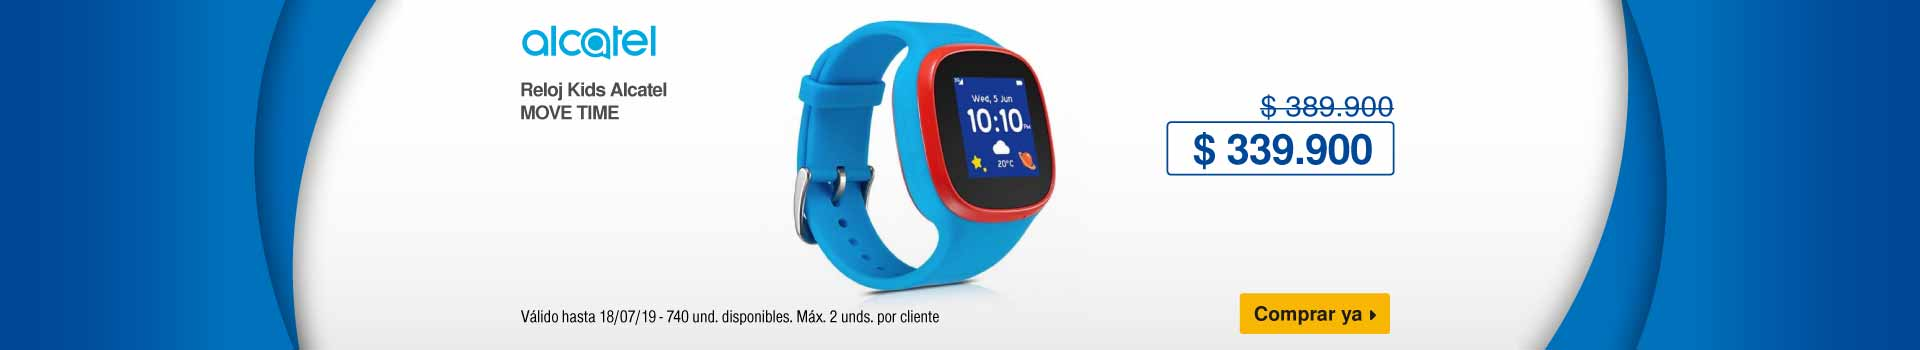 AK-KT-BCAT-1-SMARTWATCH-ALCATEL-KIDS-JULIO 13